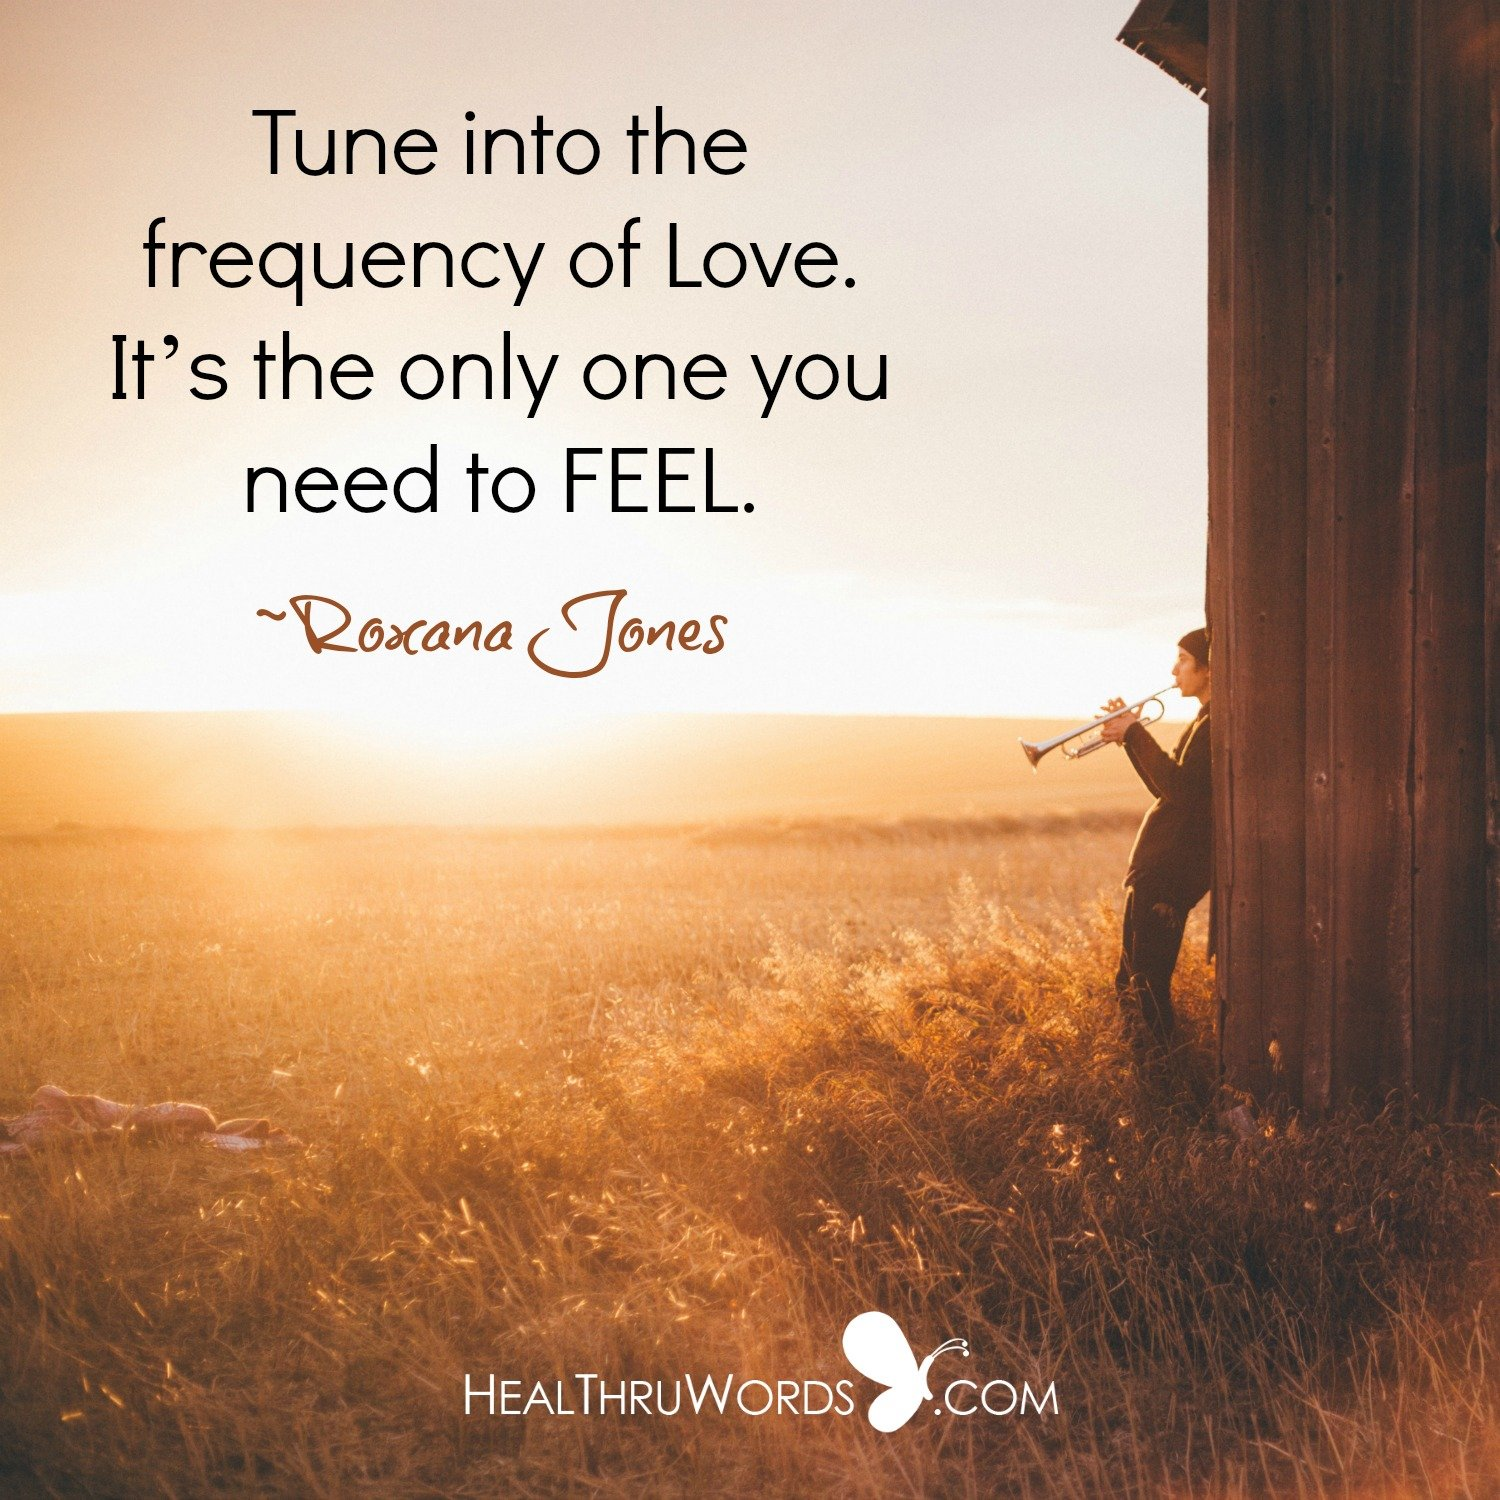 Inspirational Image: Feeling Your Frequency